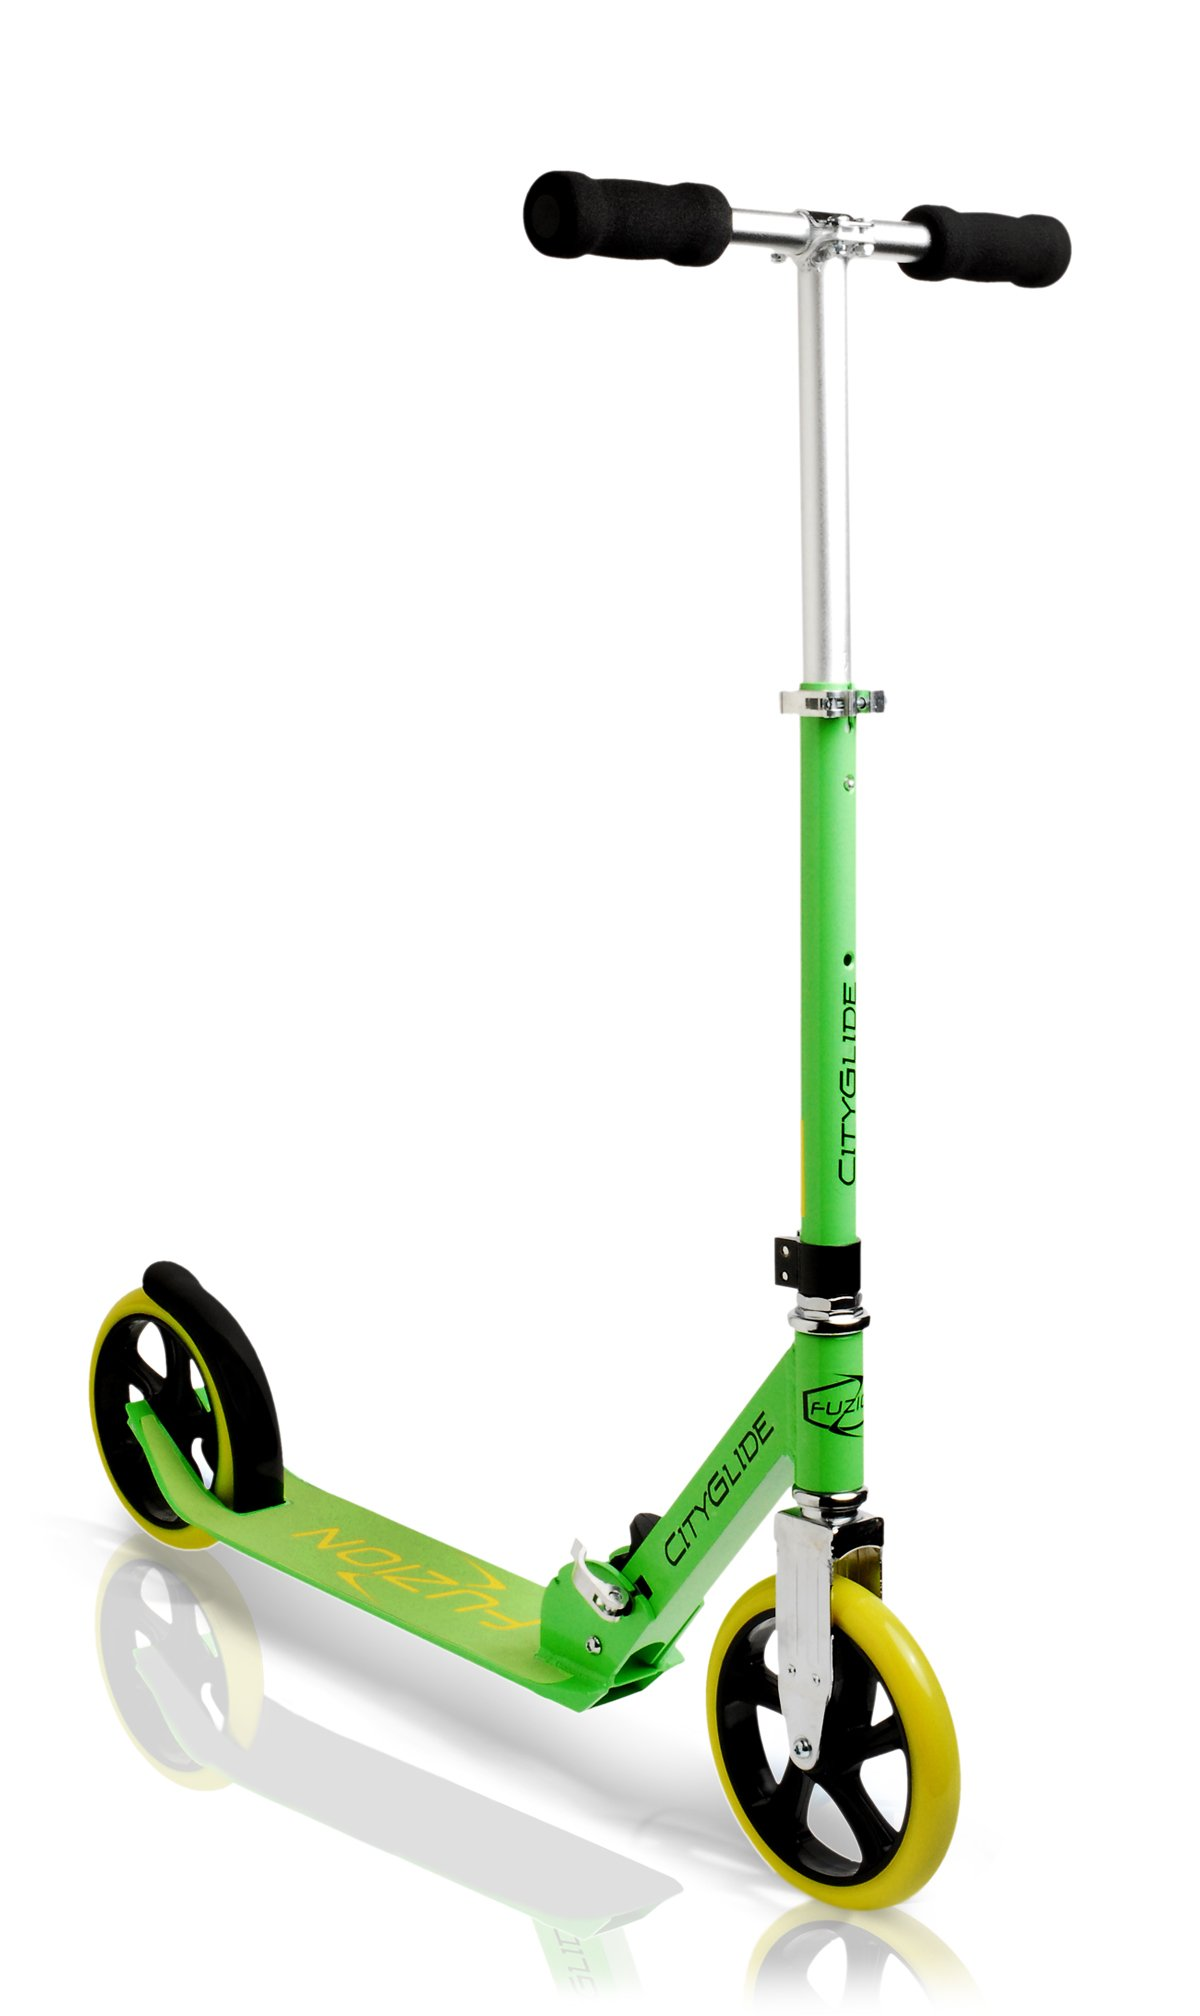 Fuzion Cityglide Adult Kick Scooter (Green)